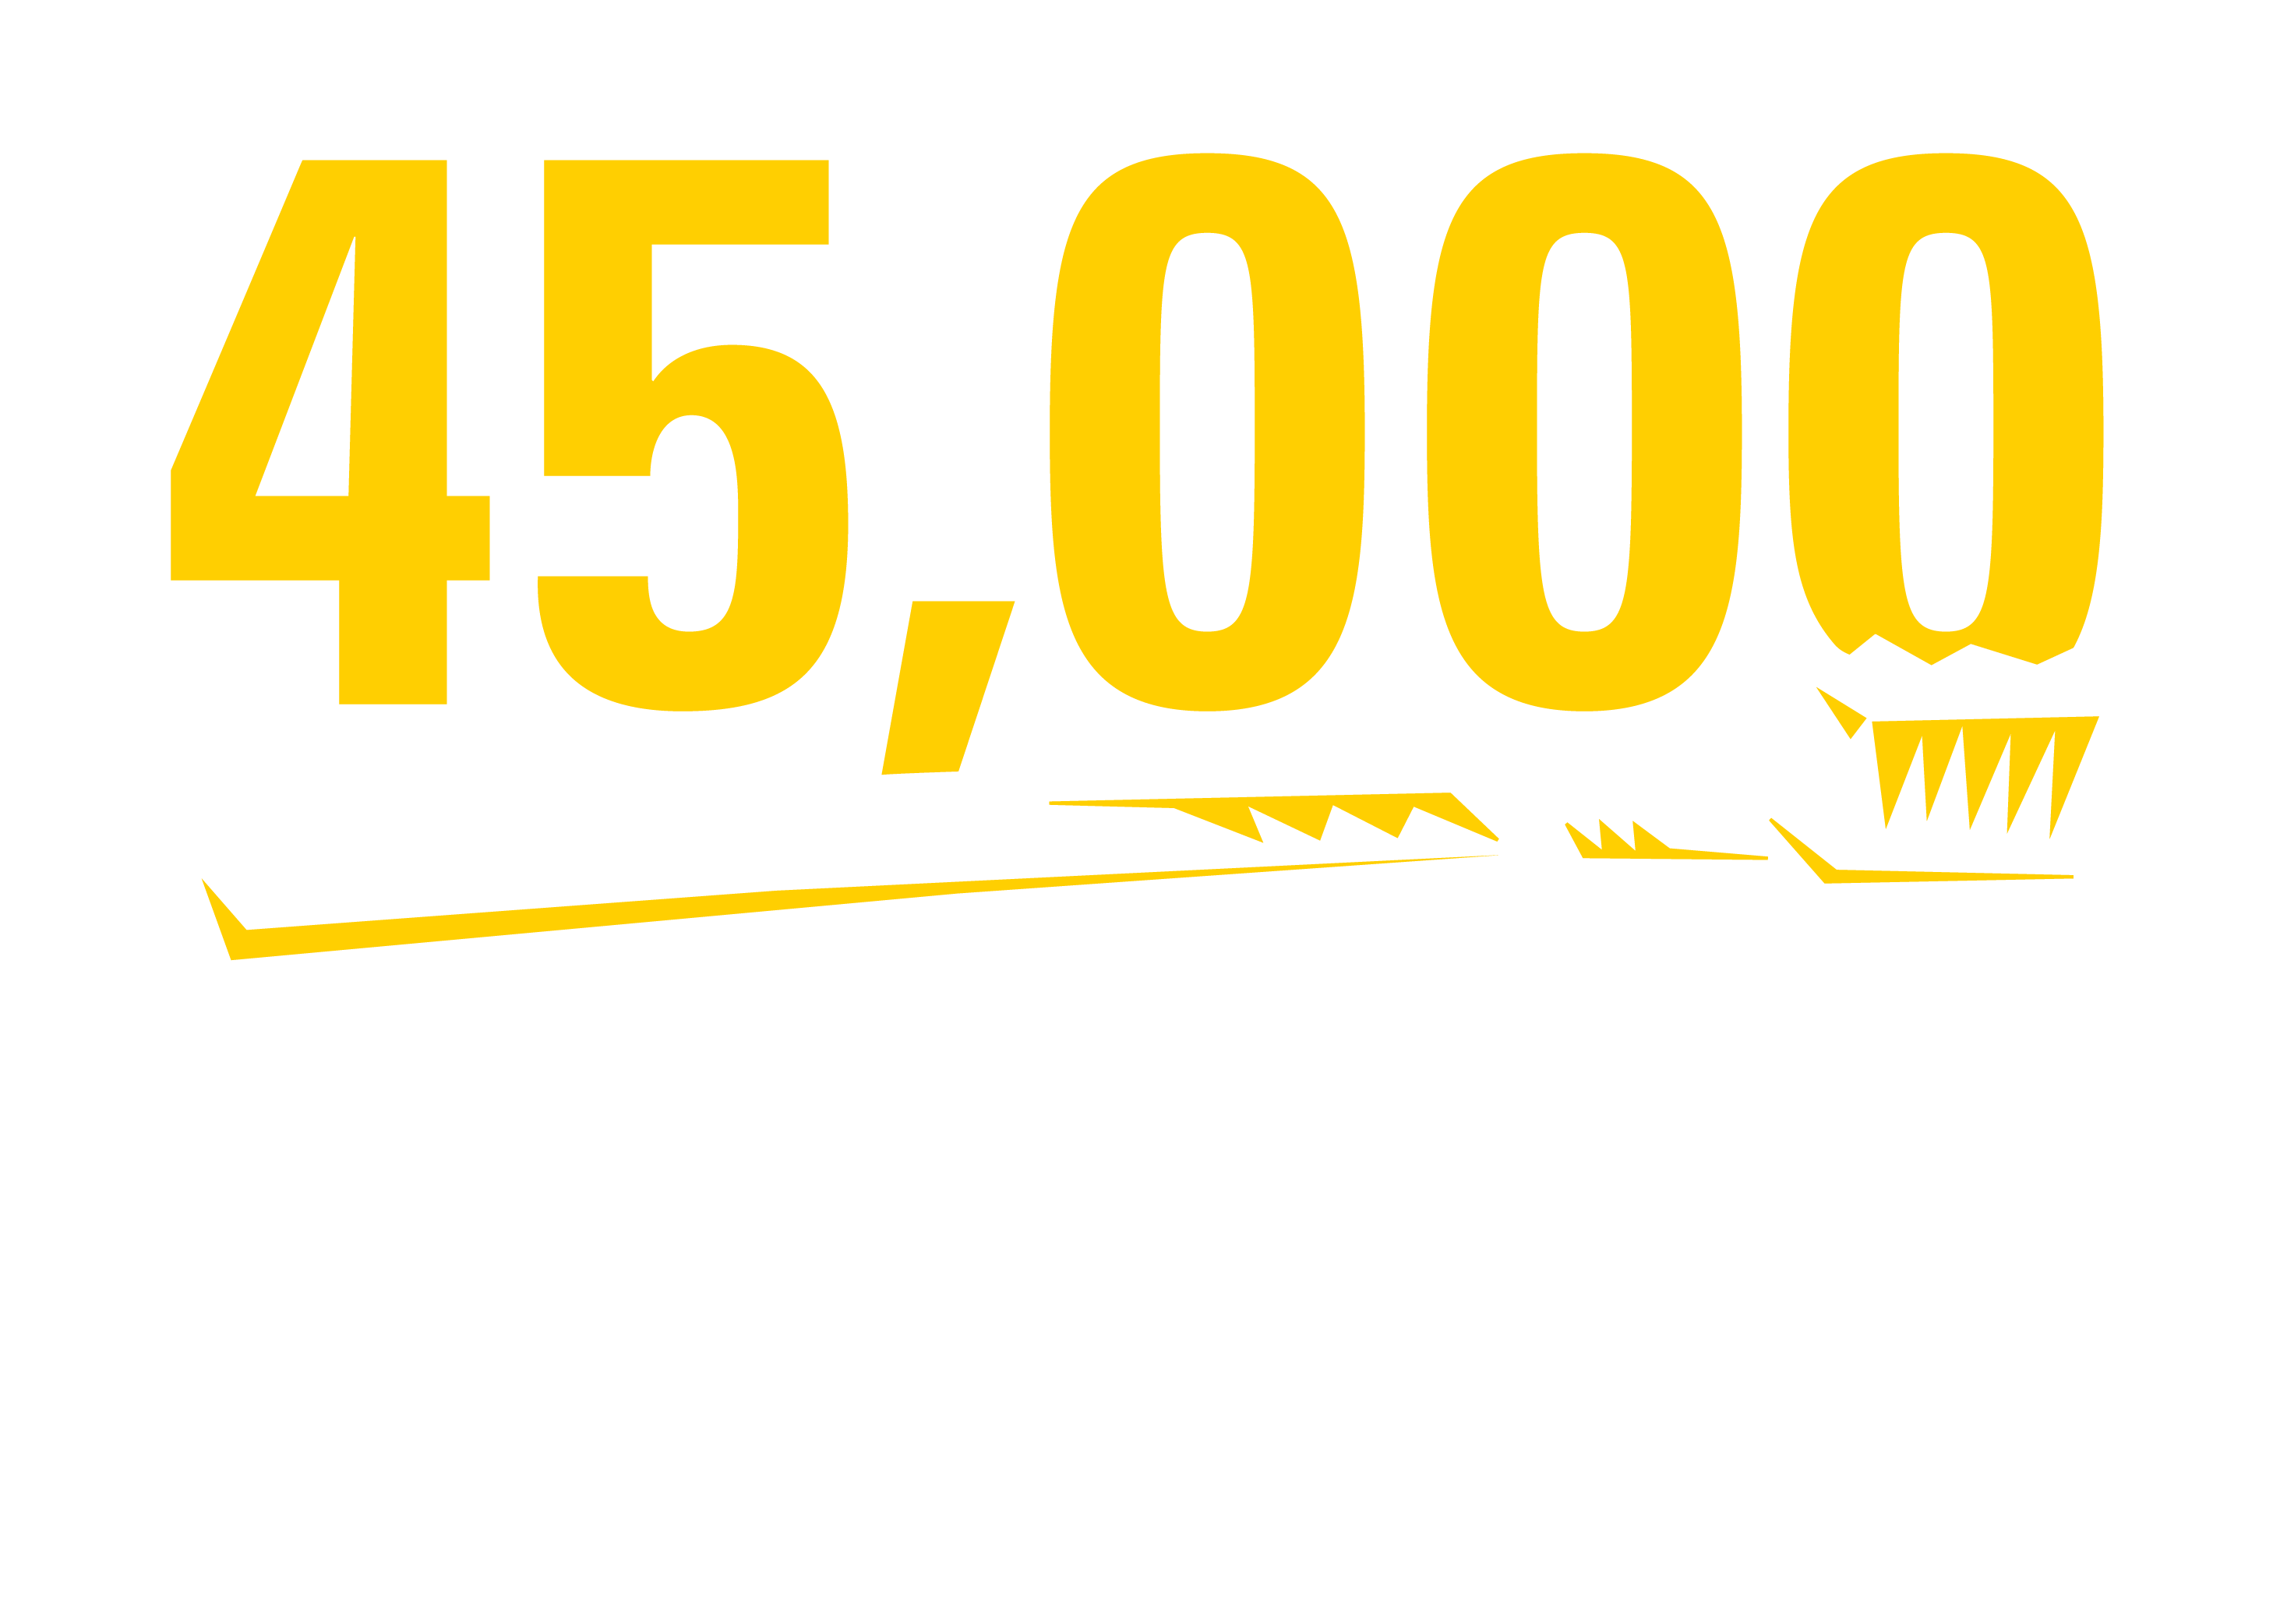 45,000 Toothbrushes Given out Every Year